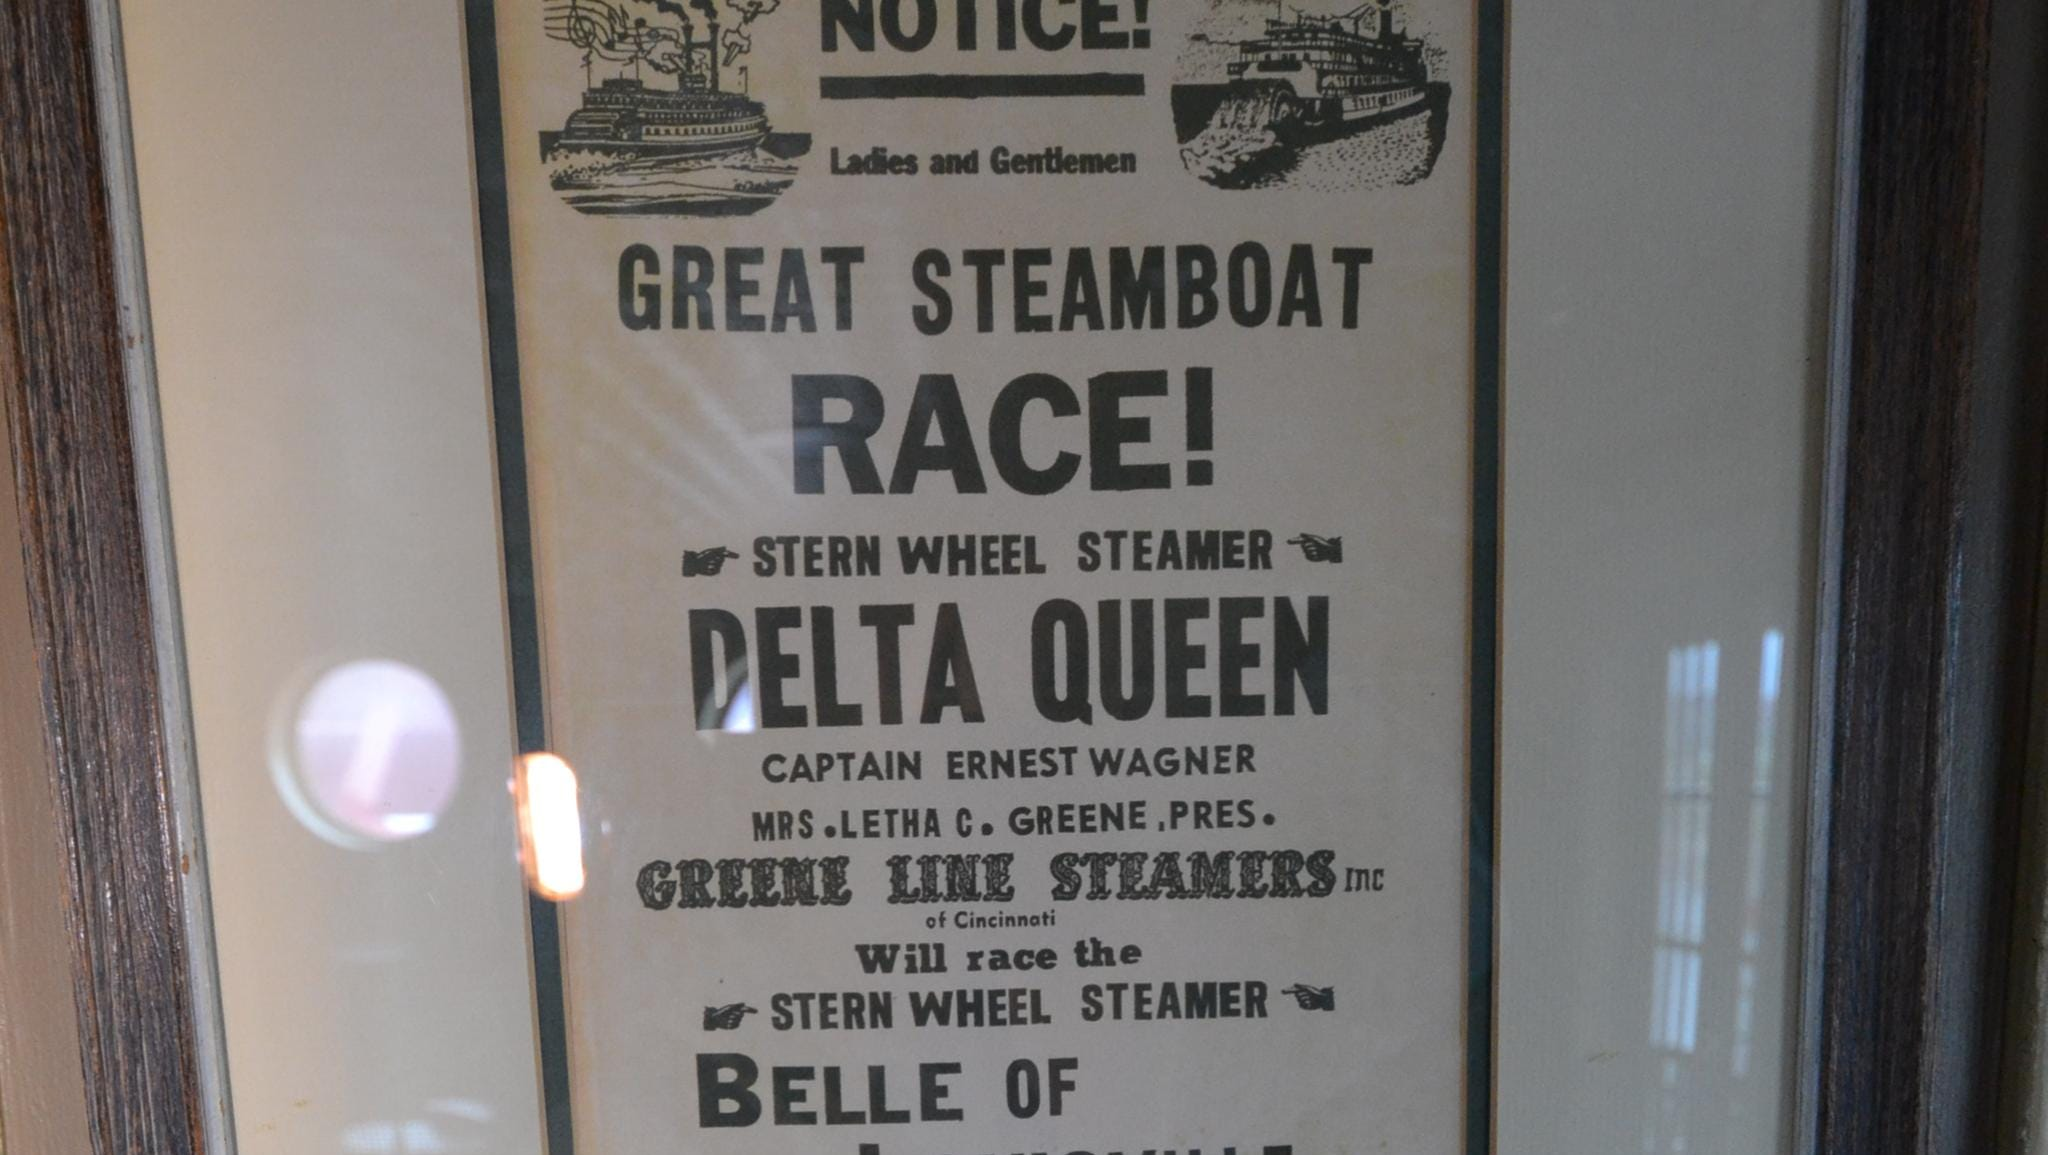 Among the historical items adorning the walls of the American Queen's interior are flyers from steamboat races that took place decades ago.